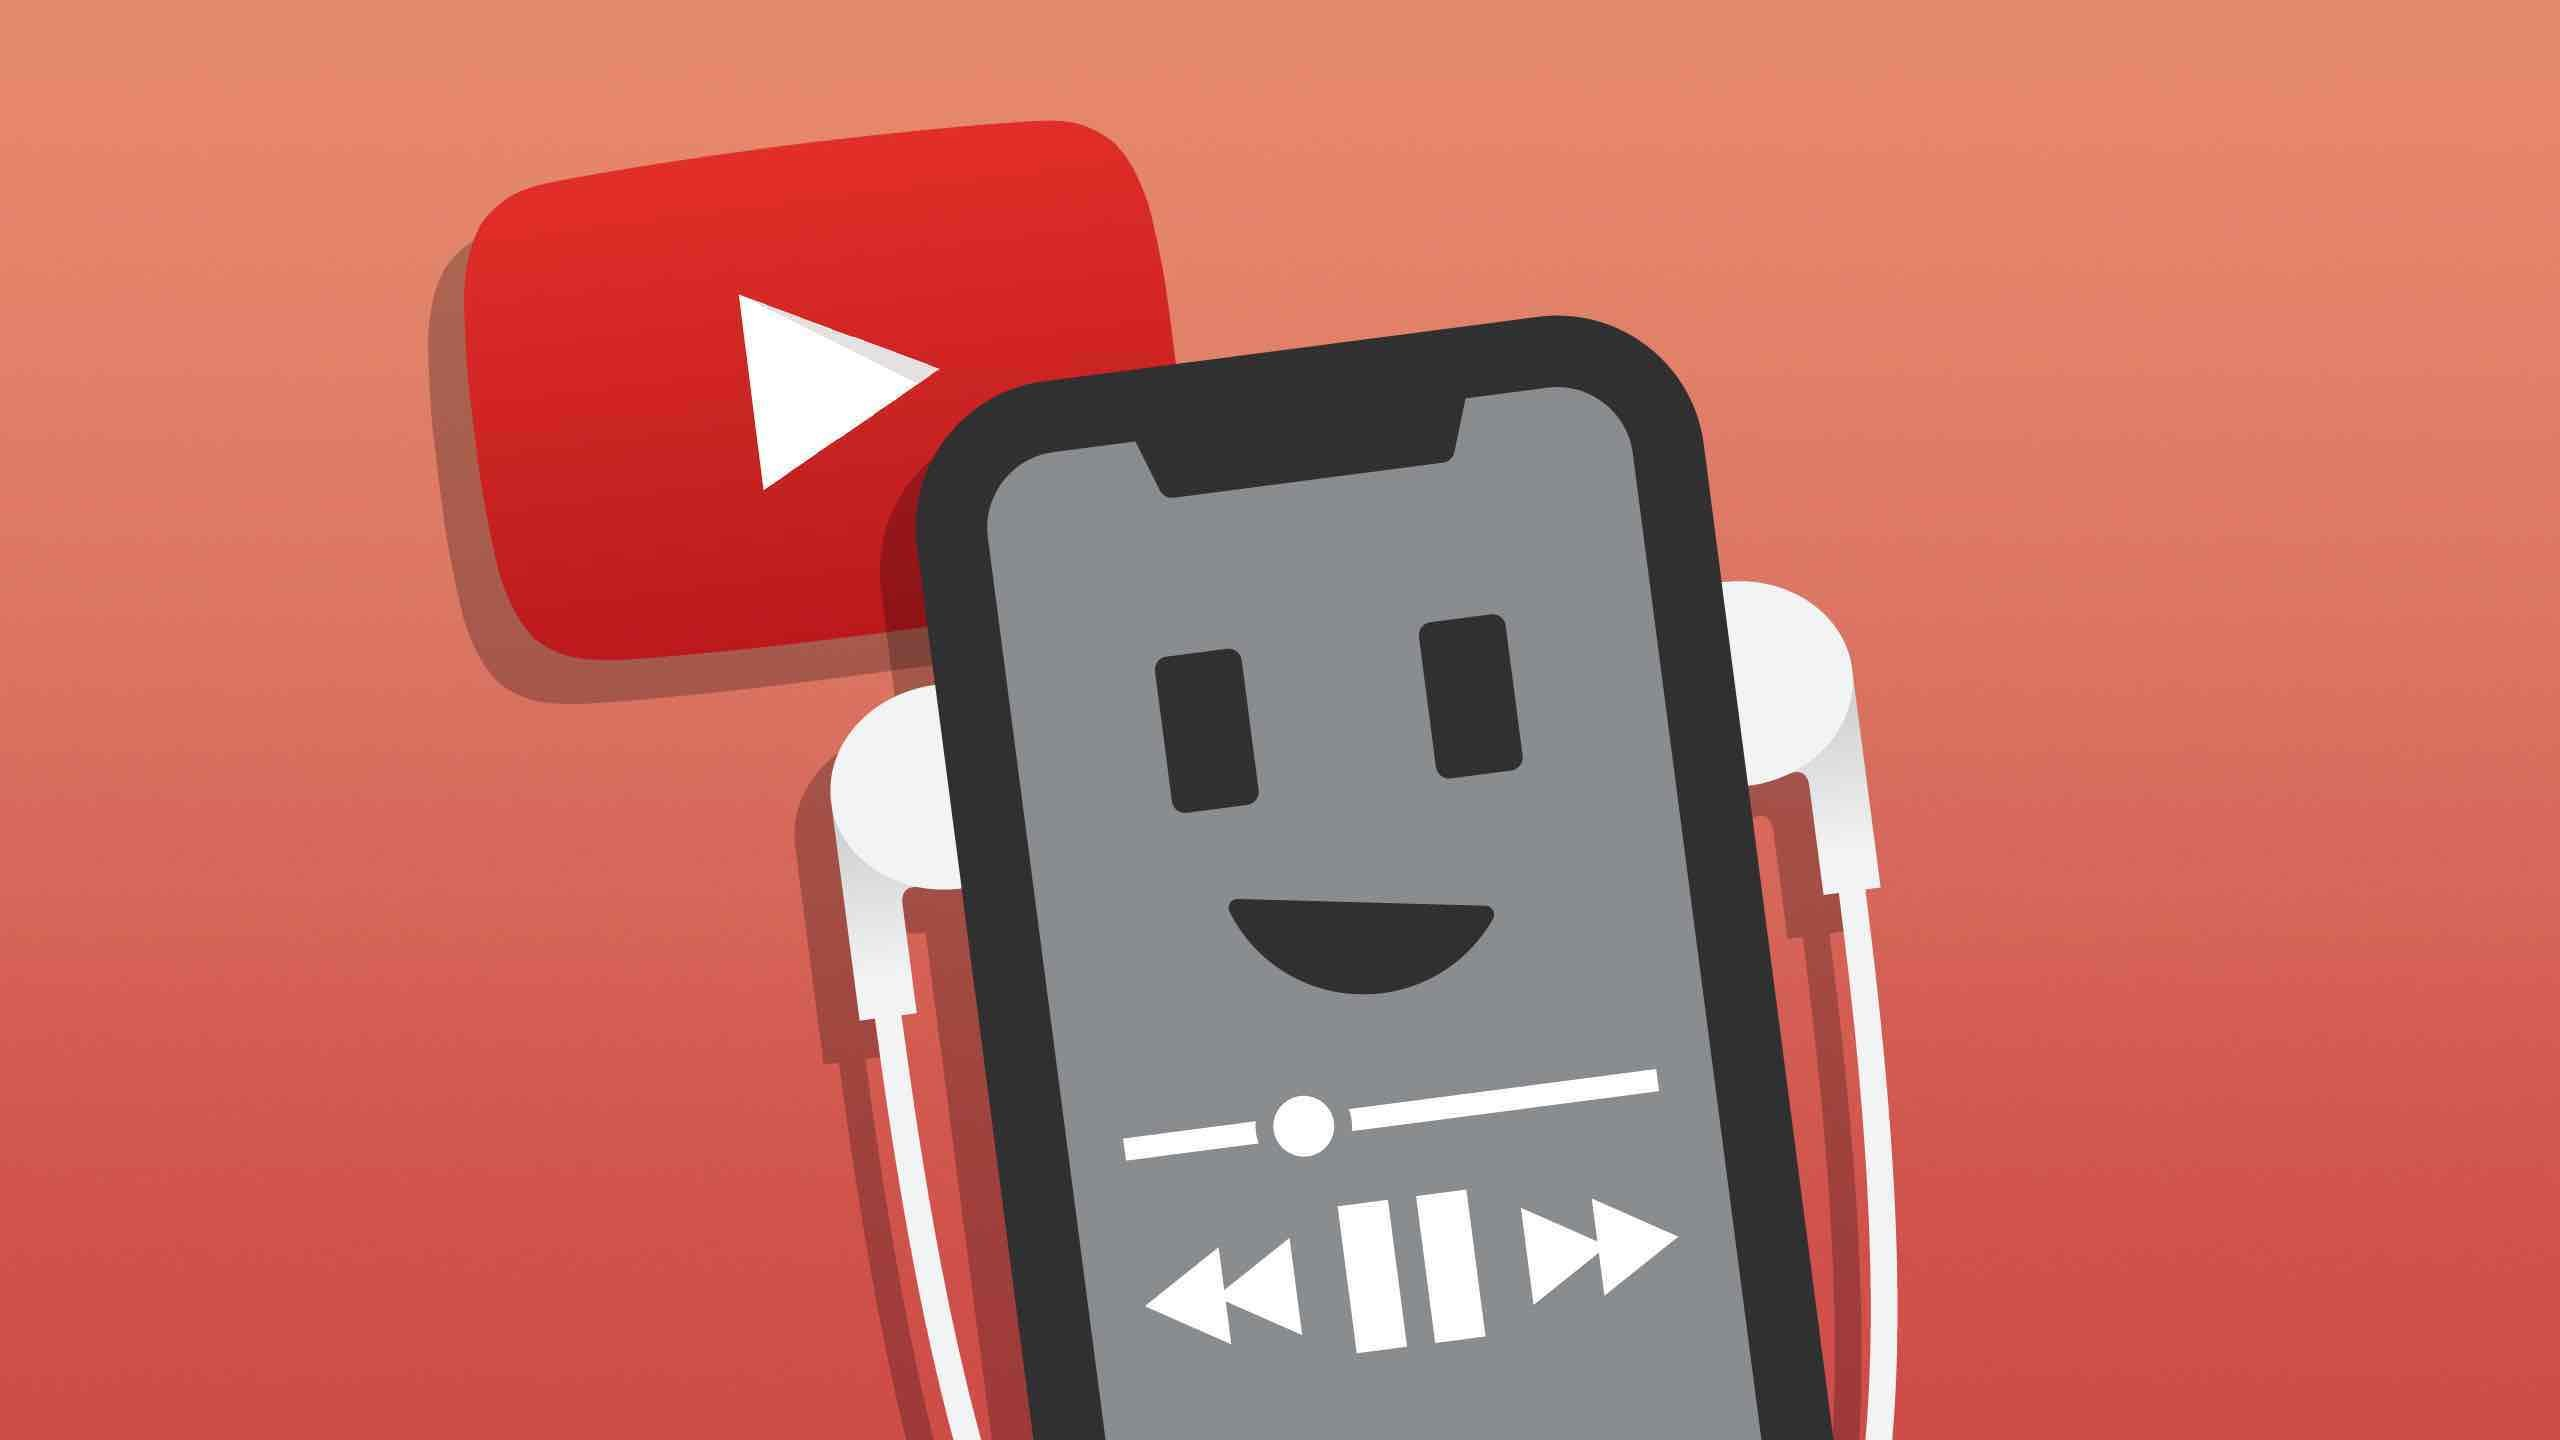 How To Listen To Youtube In The Background On Iphone The Quick Fix